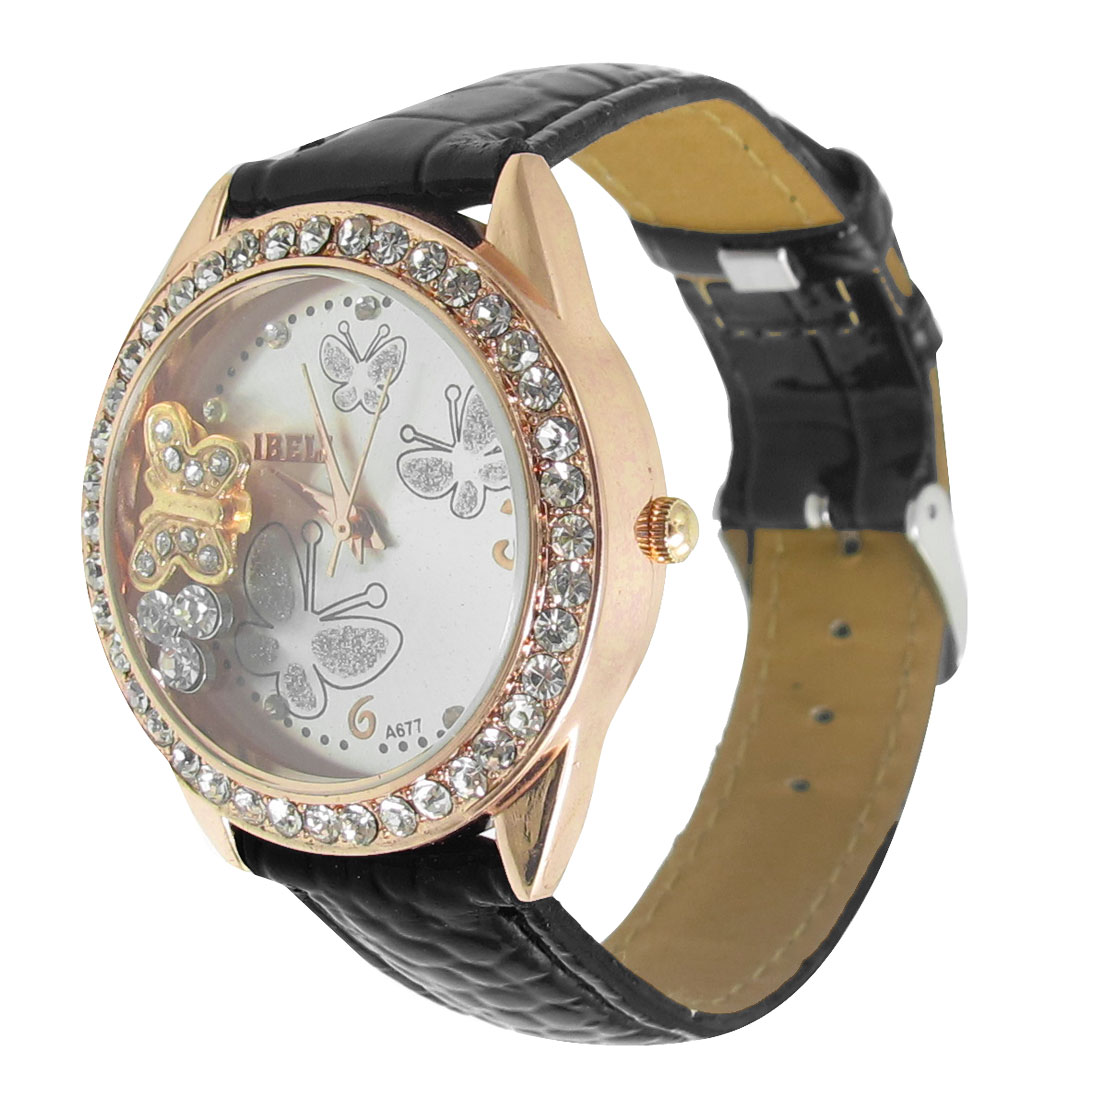 Single Prong Buckle Butterflies Decor Dial Black Faux Leather Band Wrist Watch